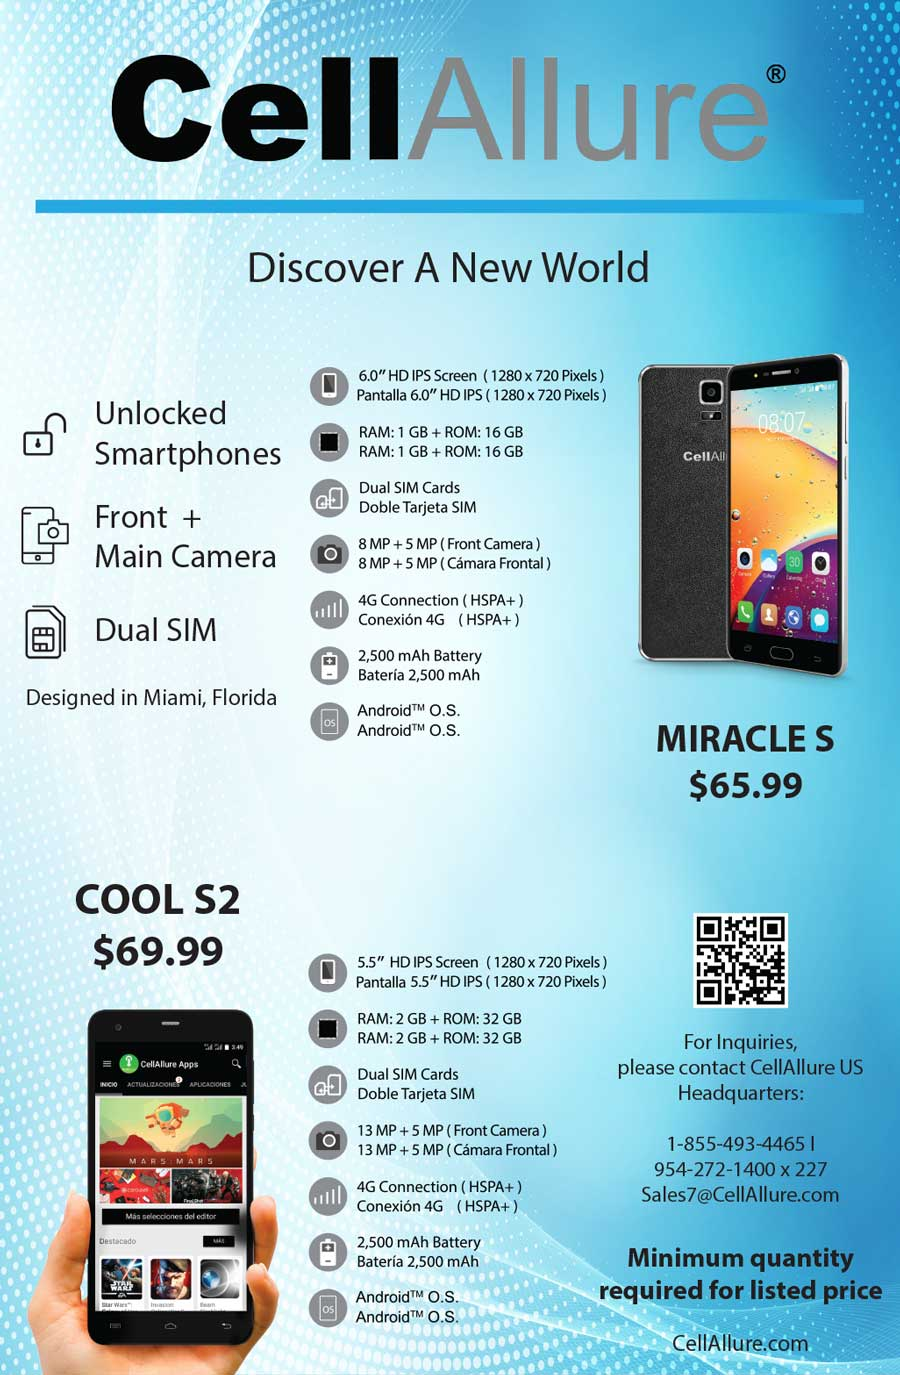 CellAllure: Unlocked Cell Phones | Android | DUAL SIM